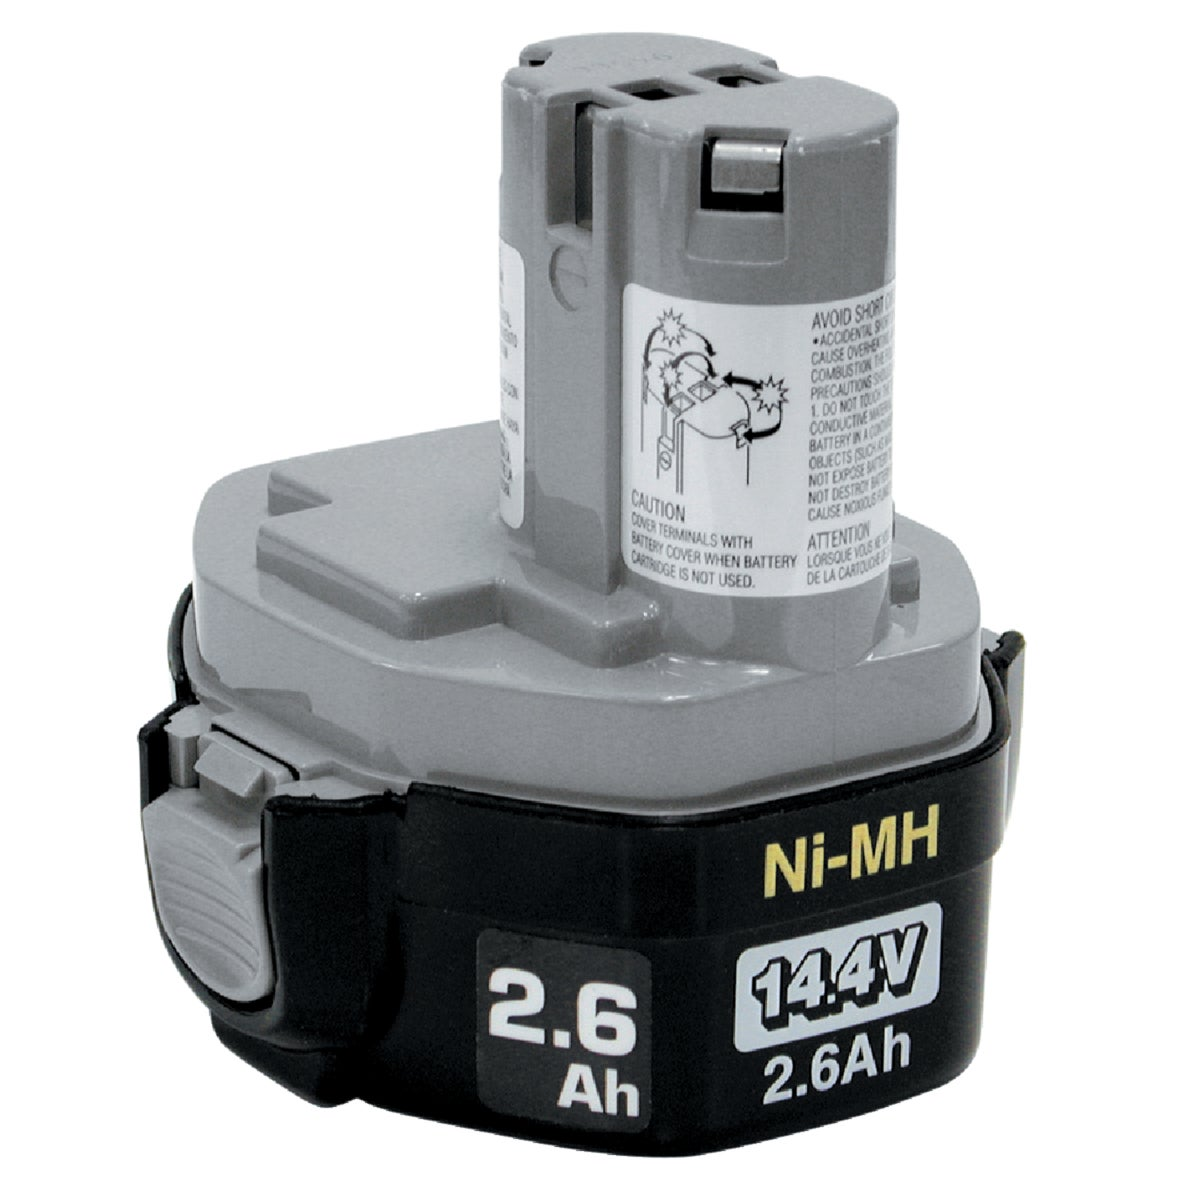 14.4V NMN BATTERY PACK - 193158-3 by Makita Usa Accessory